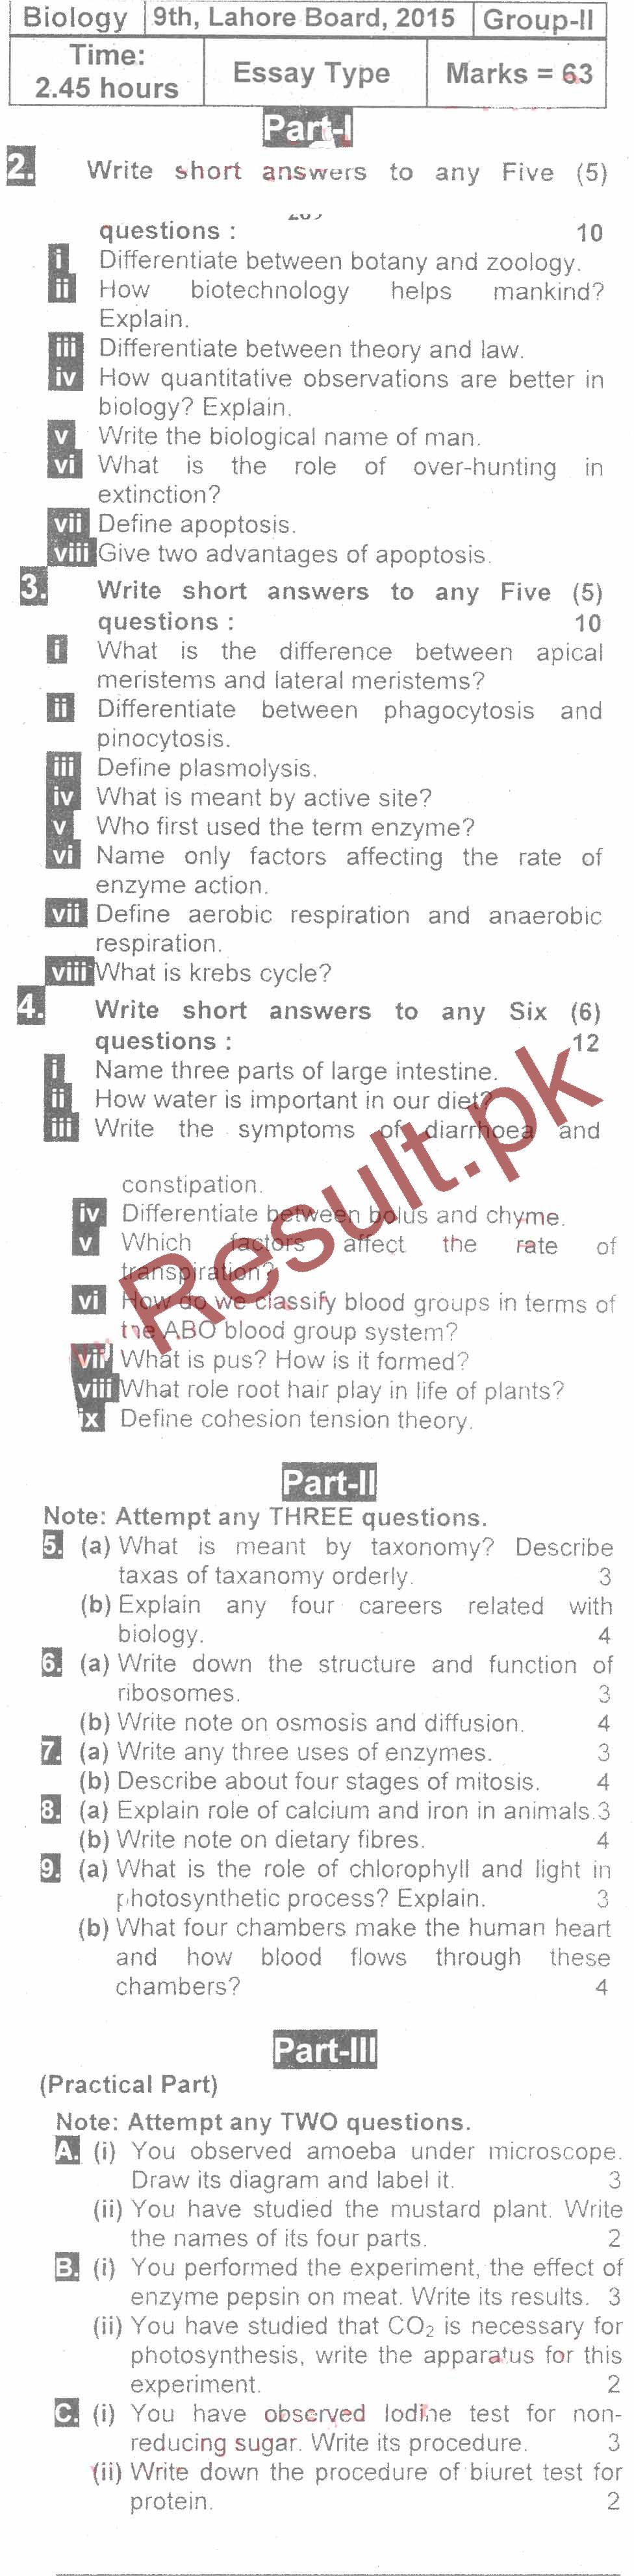 mla research papers sale Mla style research paper does your research or term paper require mla style use this accessible template to help you follow the proper guidelines.